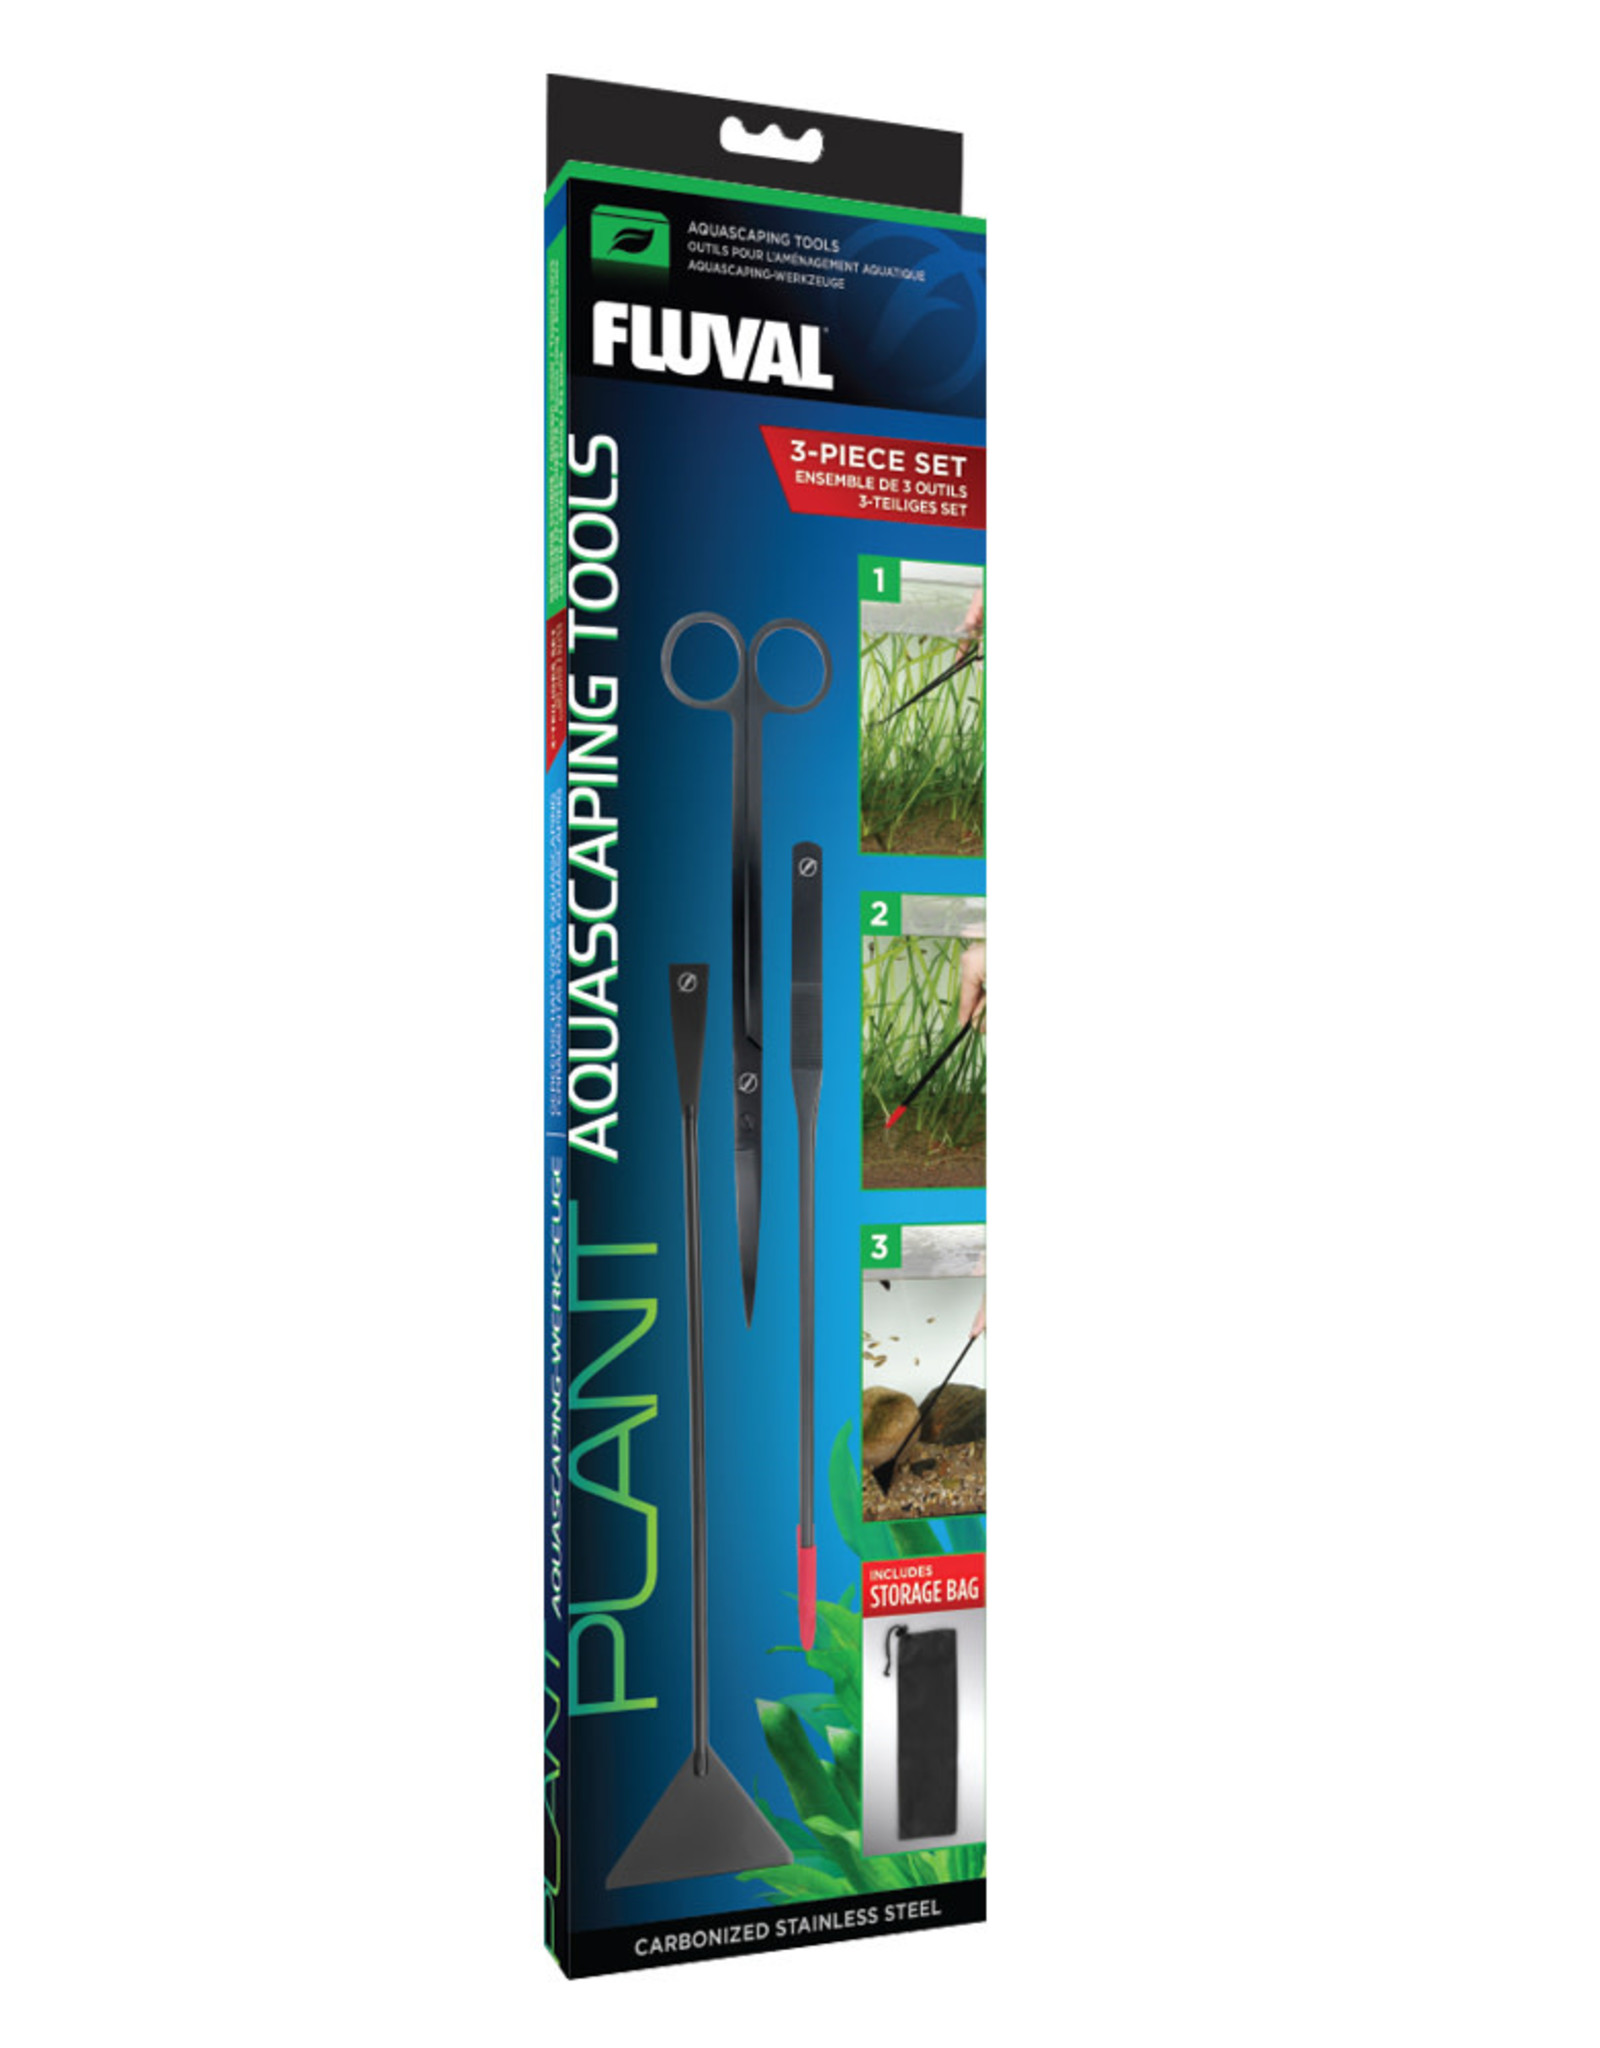 Fluval Fluval Aquascaping Tools - 3 pack